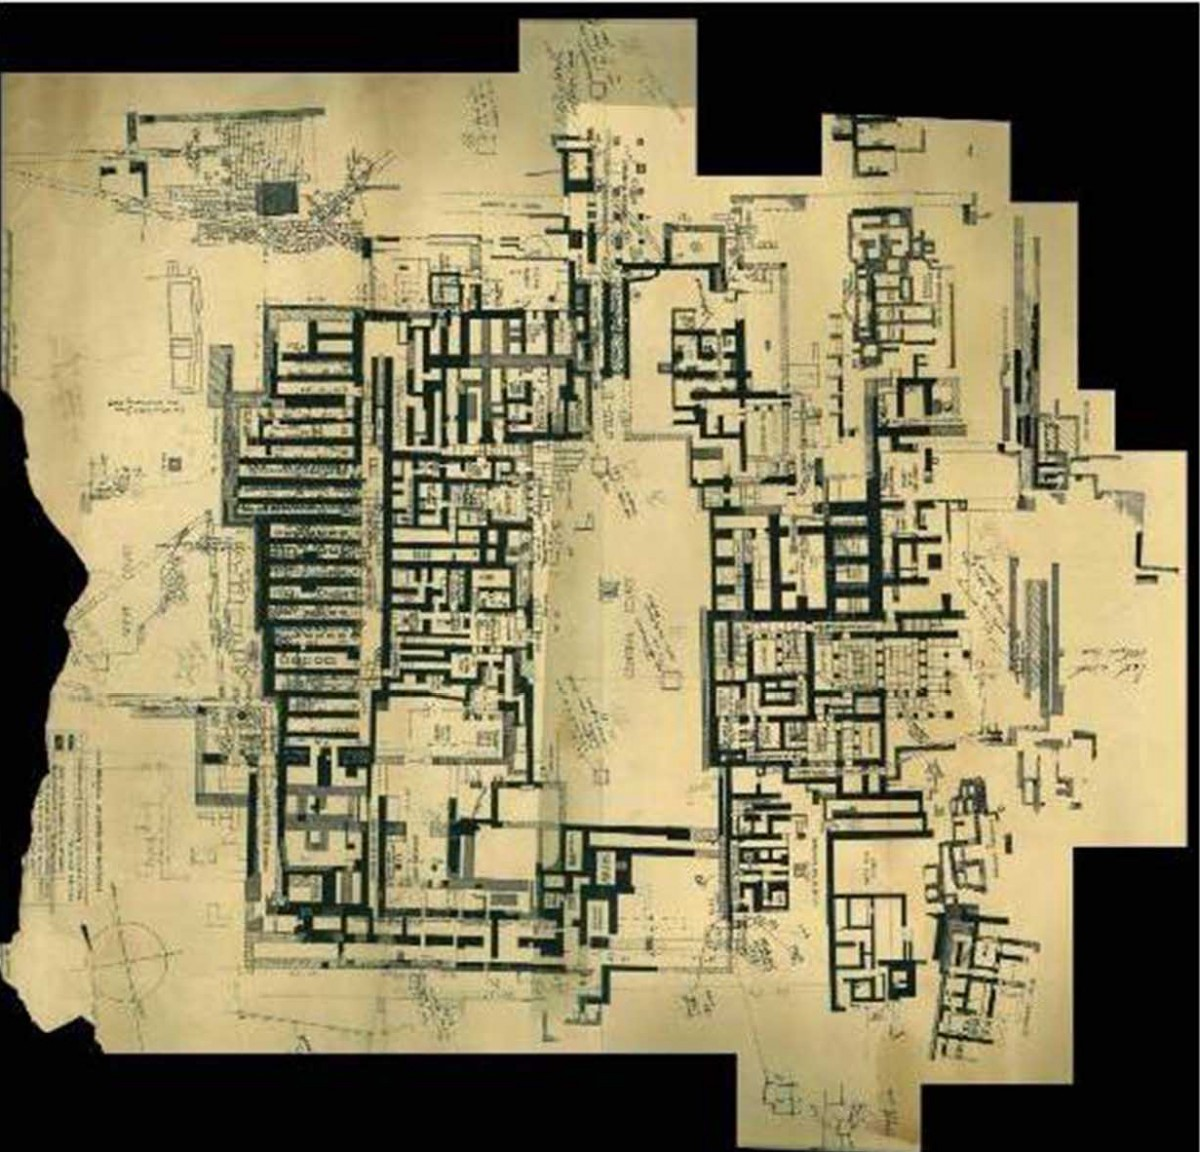 The palace, at least as an architectural form, did not emerge suddenly at Knossos in MM I (c. 2000/1900 BC), but more gradually and 700 years earlier.